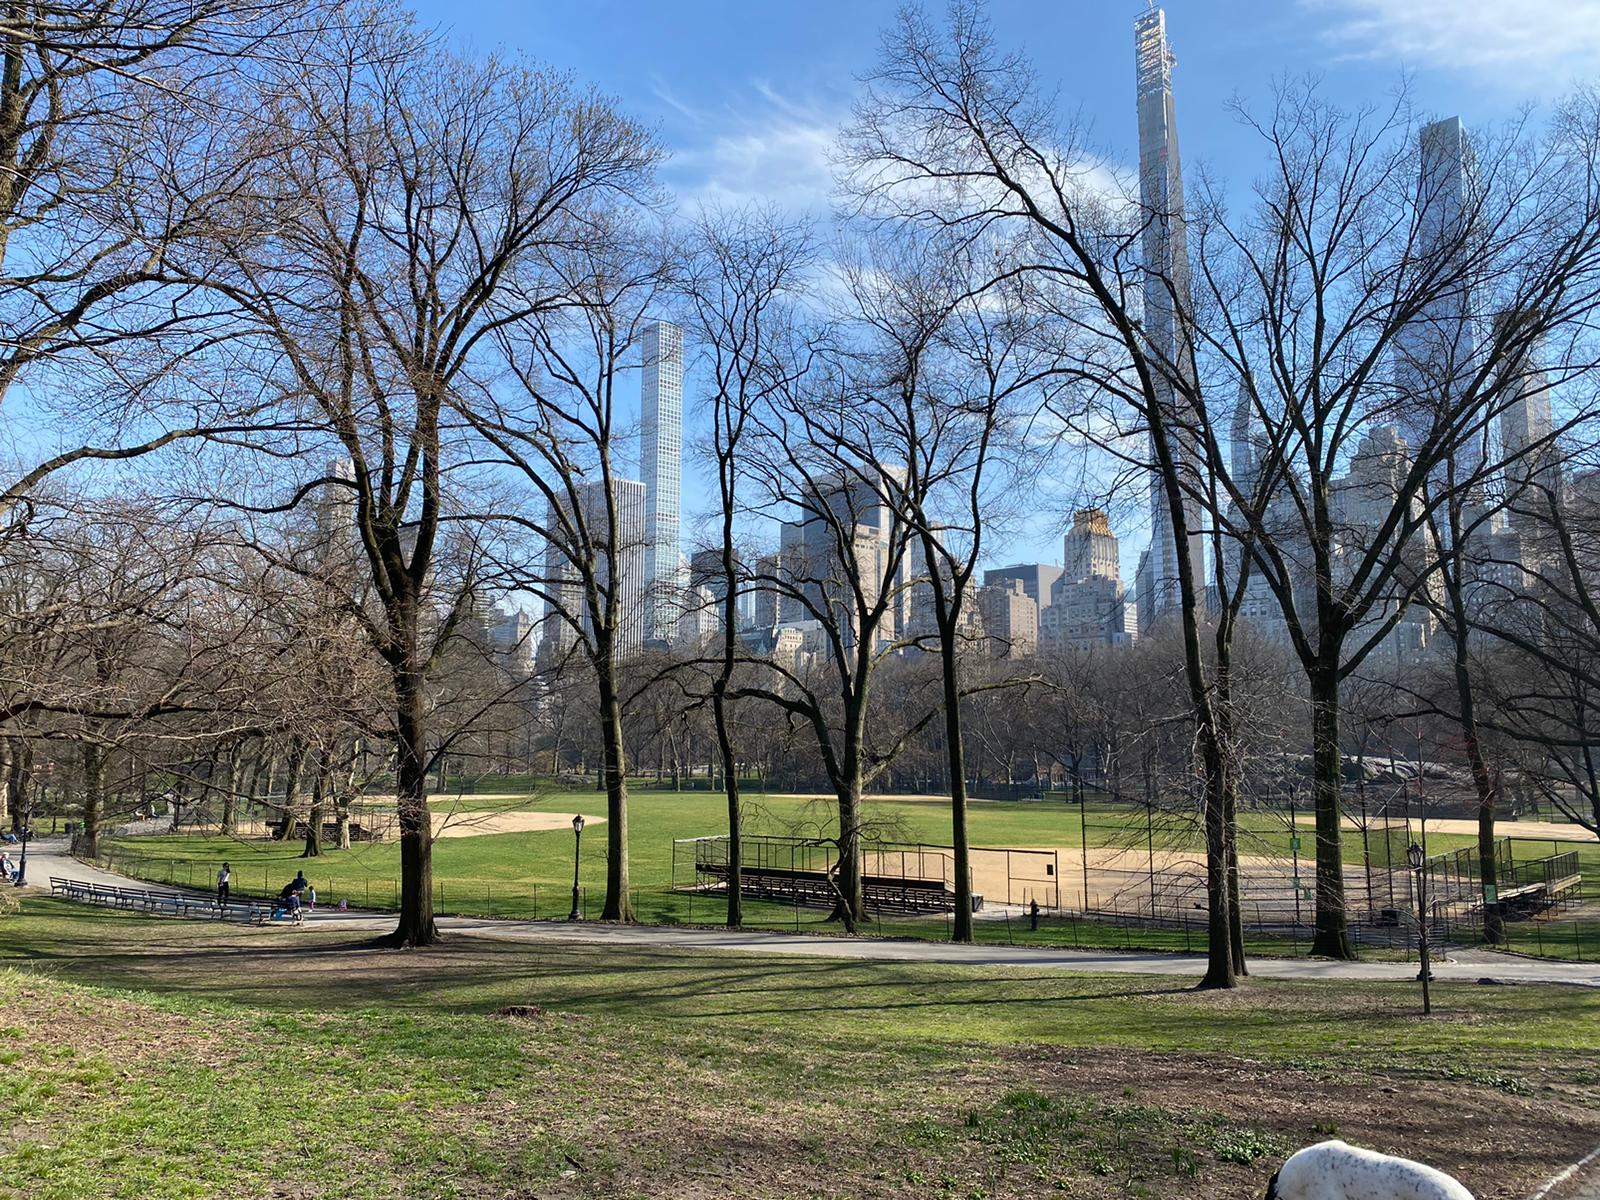 Deserted Central Park on a Friday afternoon (March 20th, 2020)